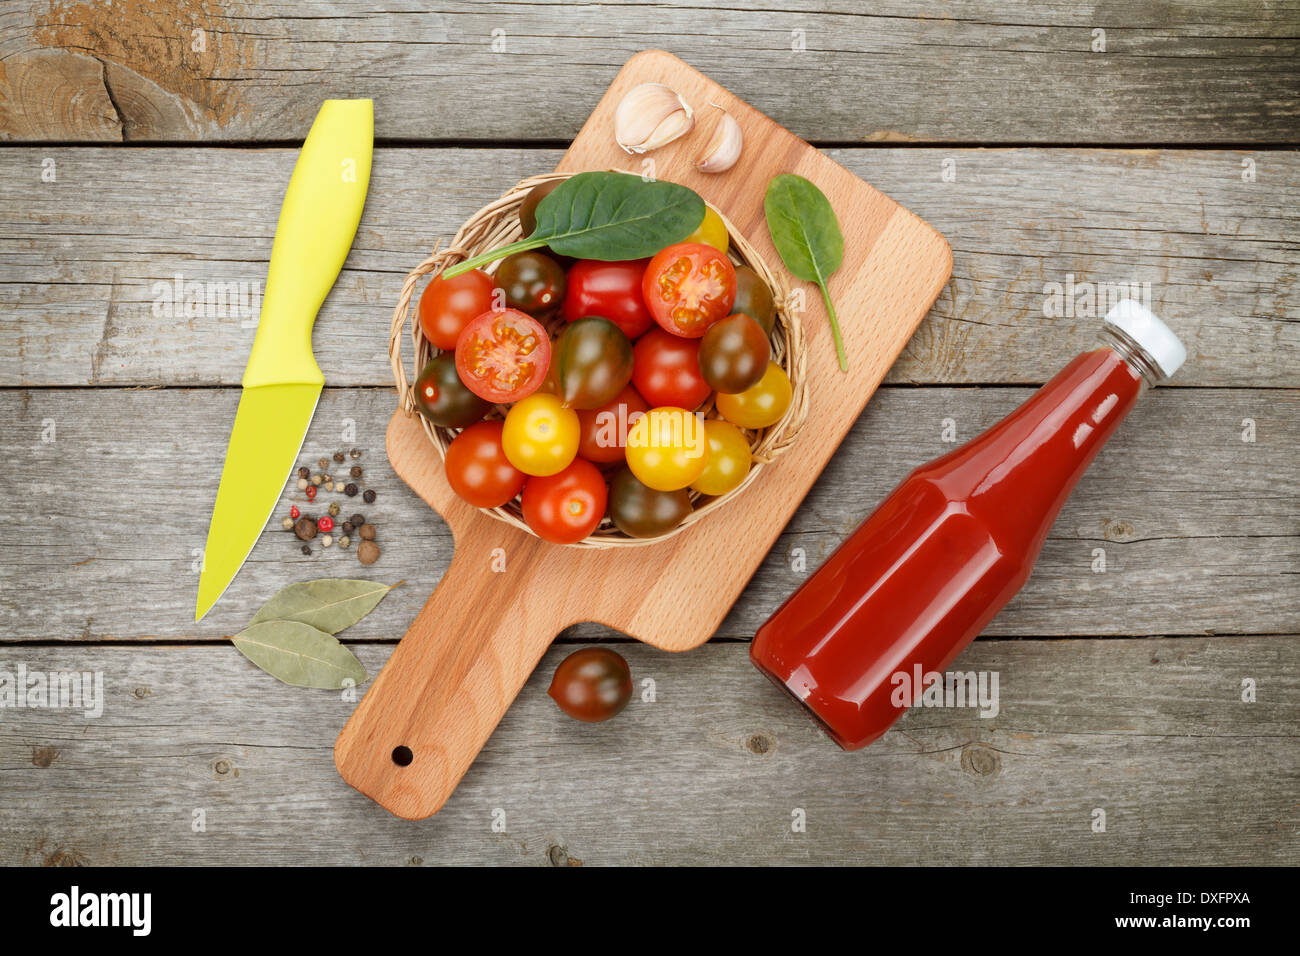 Cherry tomatoes on cutting board and ketchup bottle over wooden table background - Stock Image